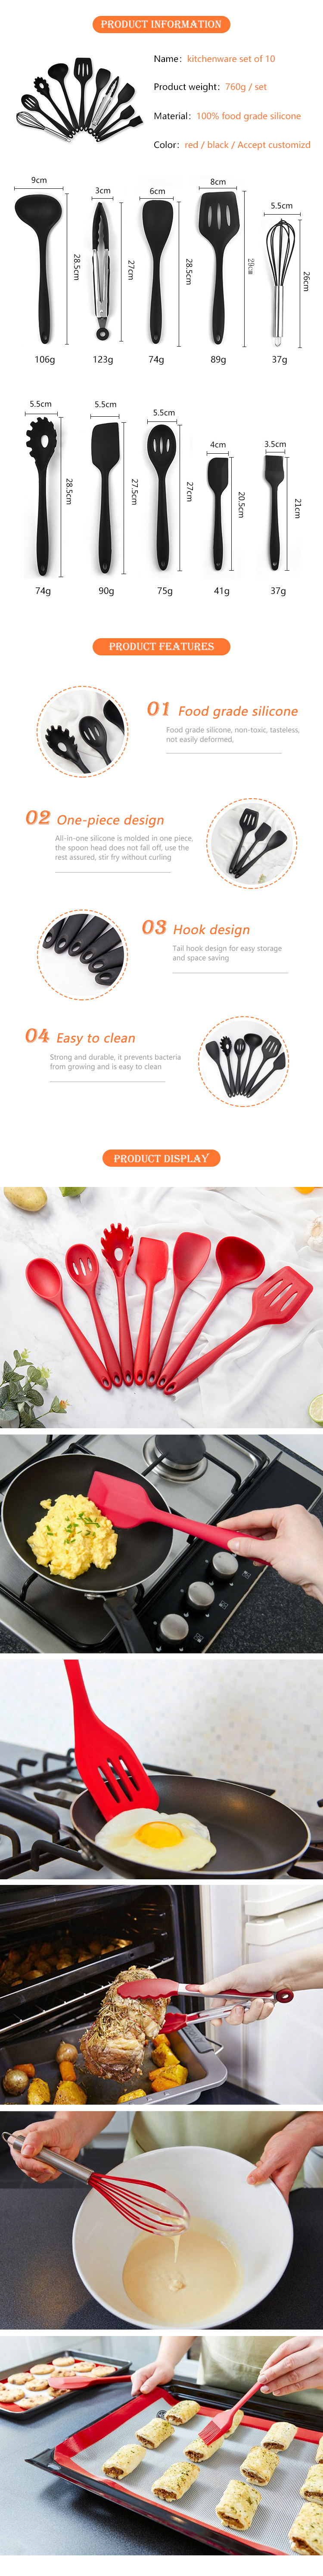 Fda Food Grade Silicone Kitchenware Set Home And Kitchen Furnitures Accessories Set 10 Piece